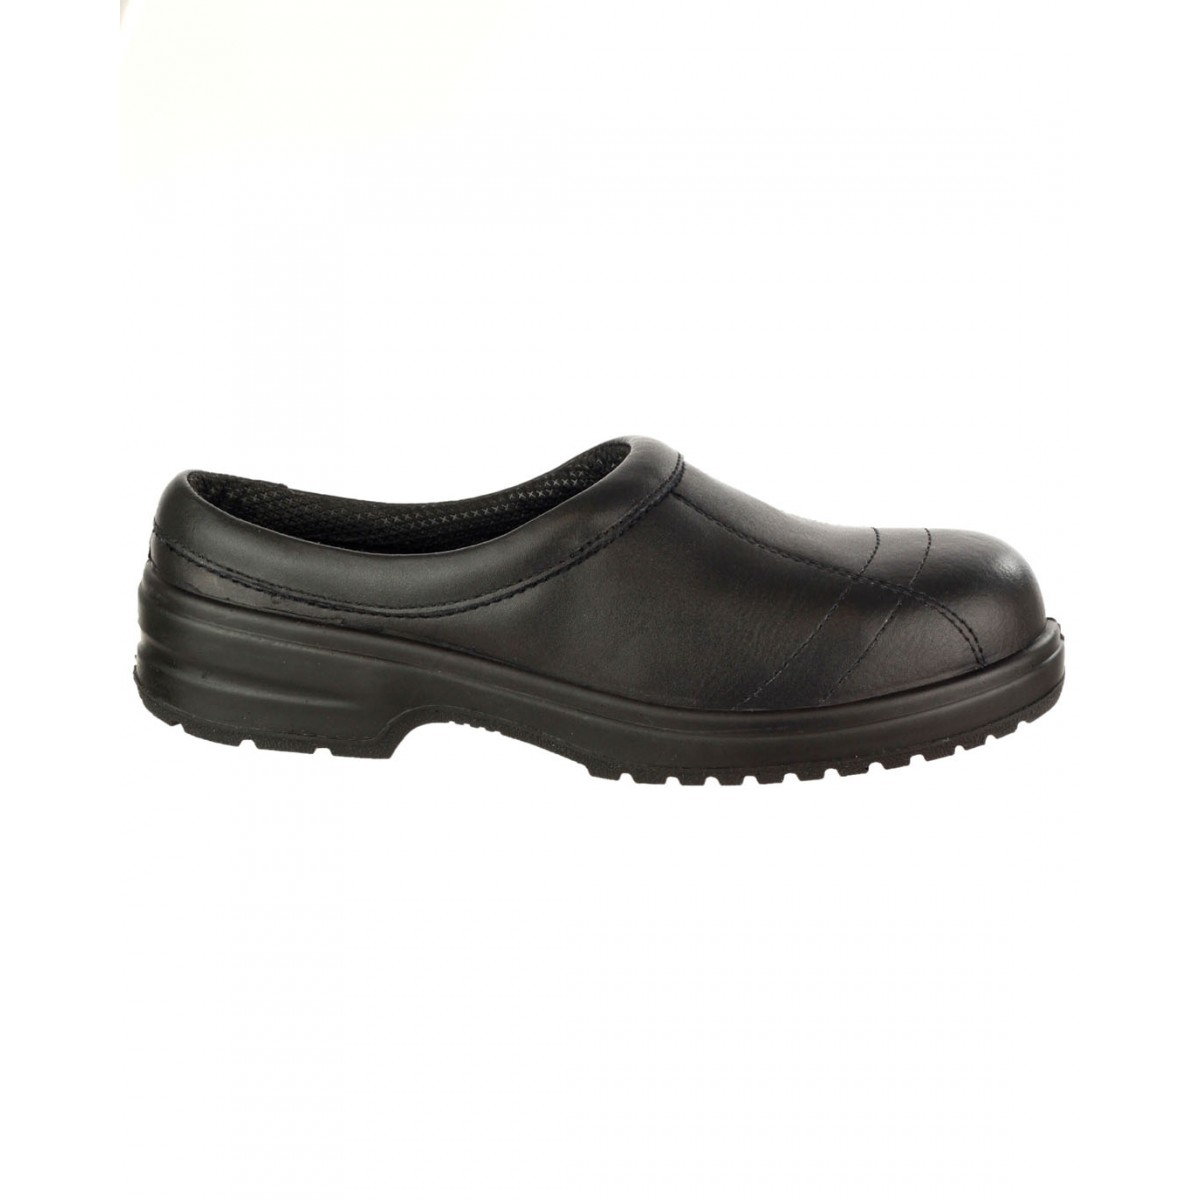 Amblers FS93C Ladies Safety Slip On Shoes - Charnwood Safety Footwear